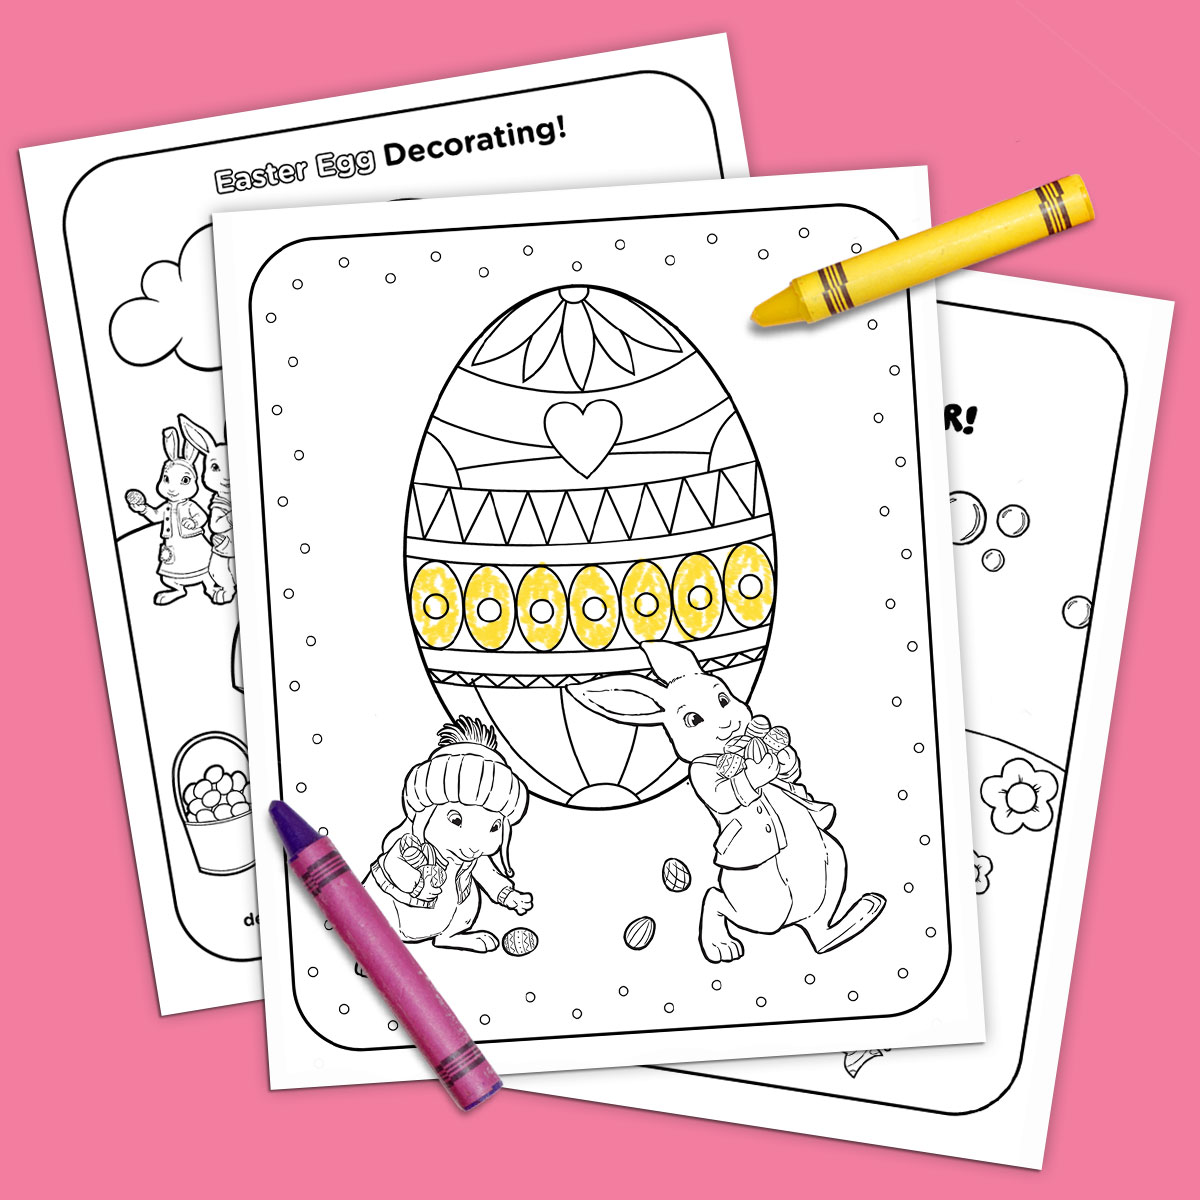 SaveSave To Pinterest Nick Jr Printable Easter Coloring Pack